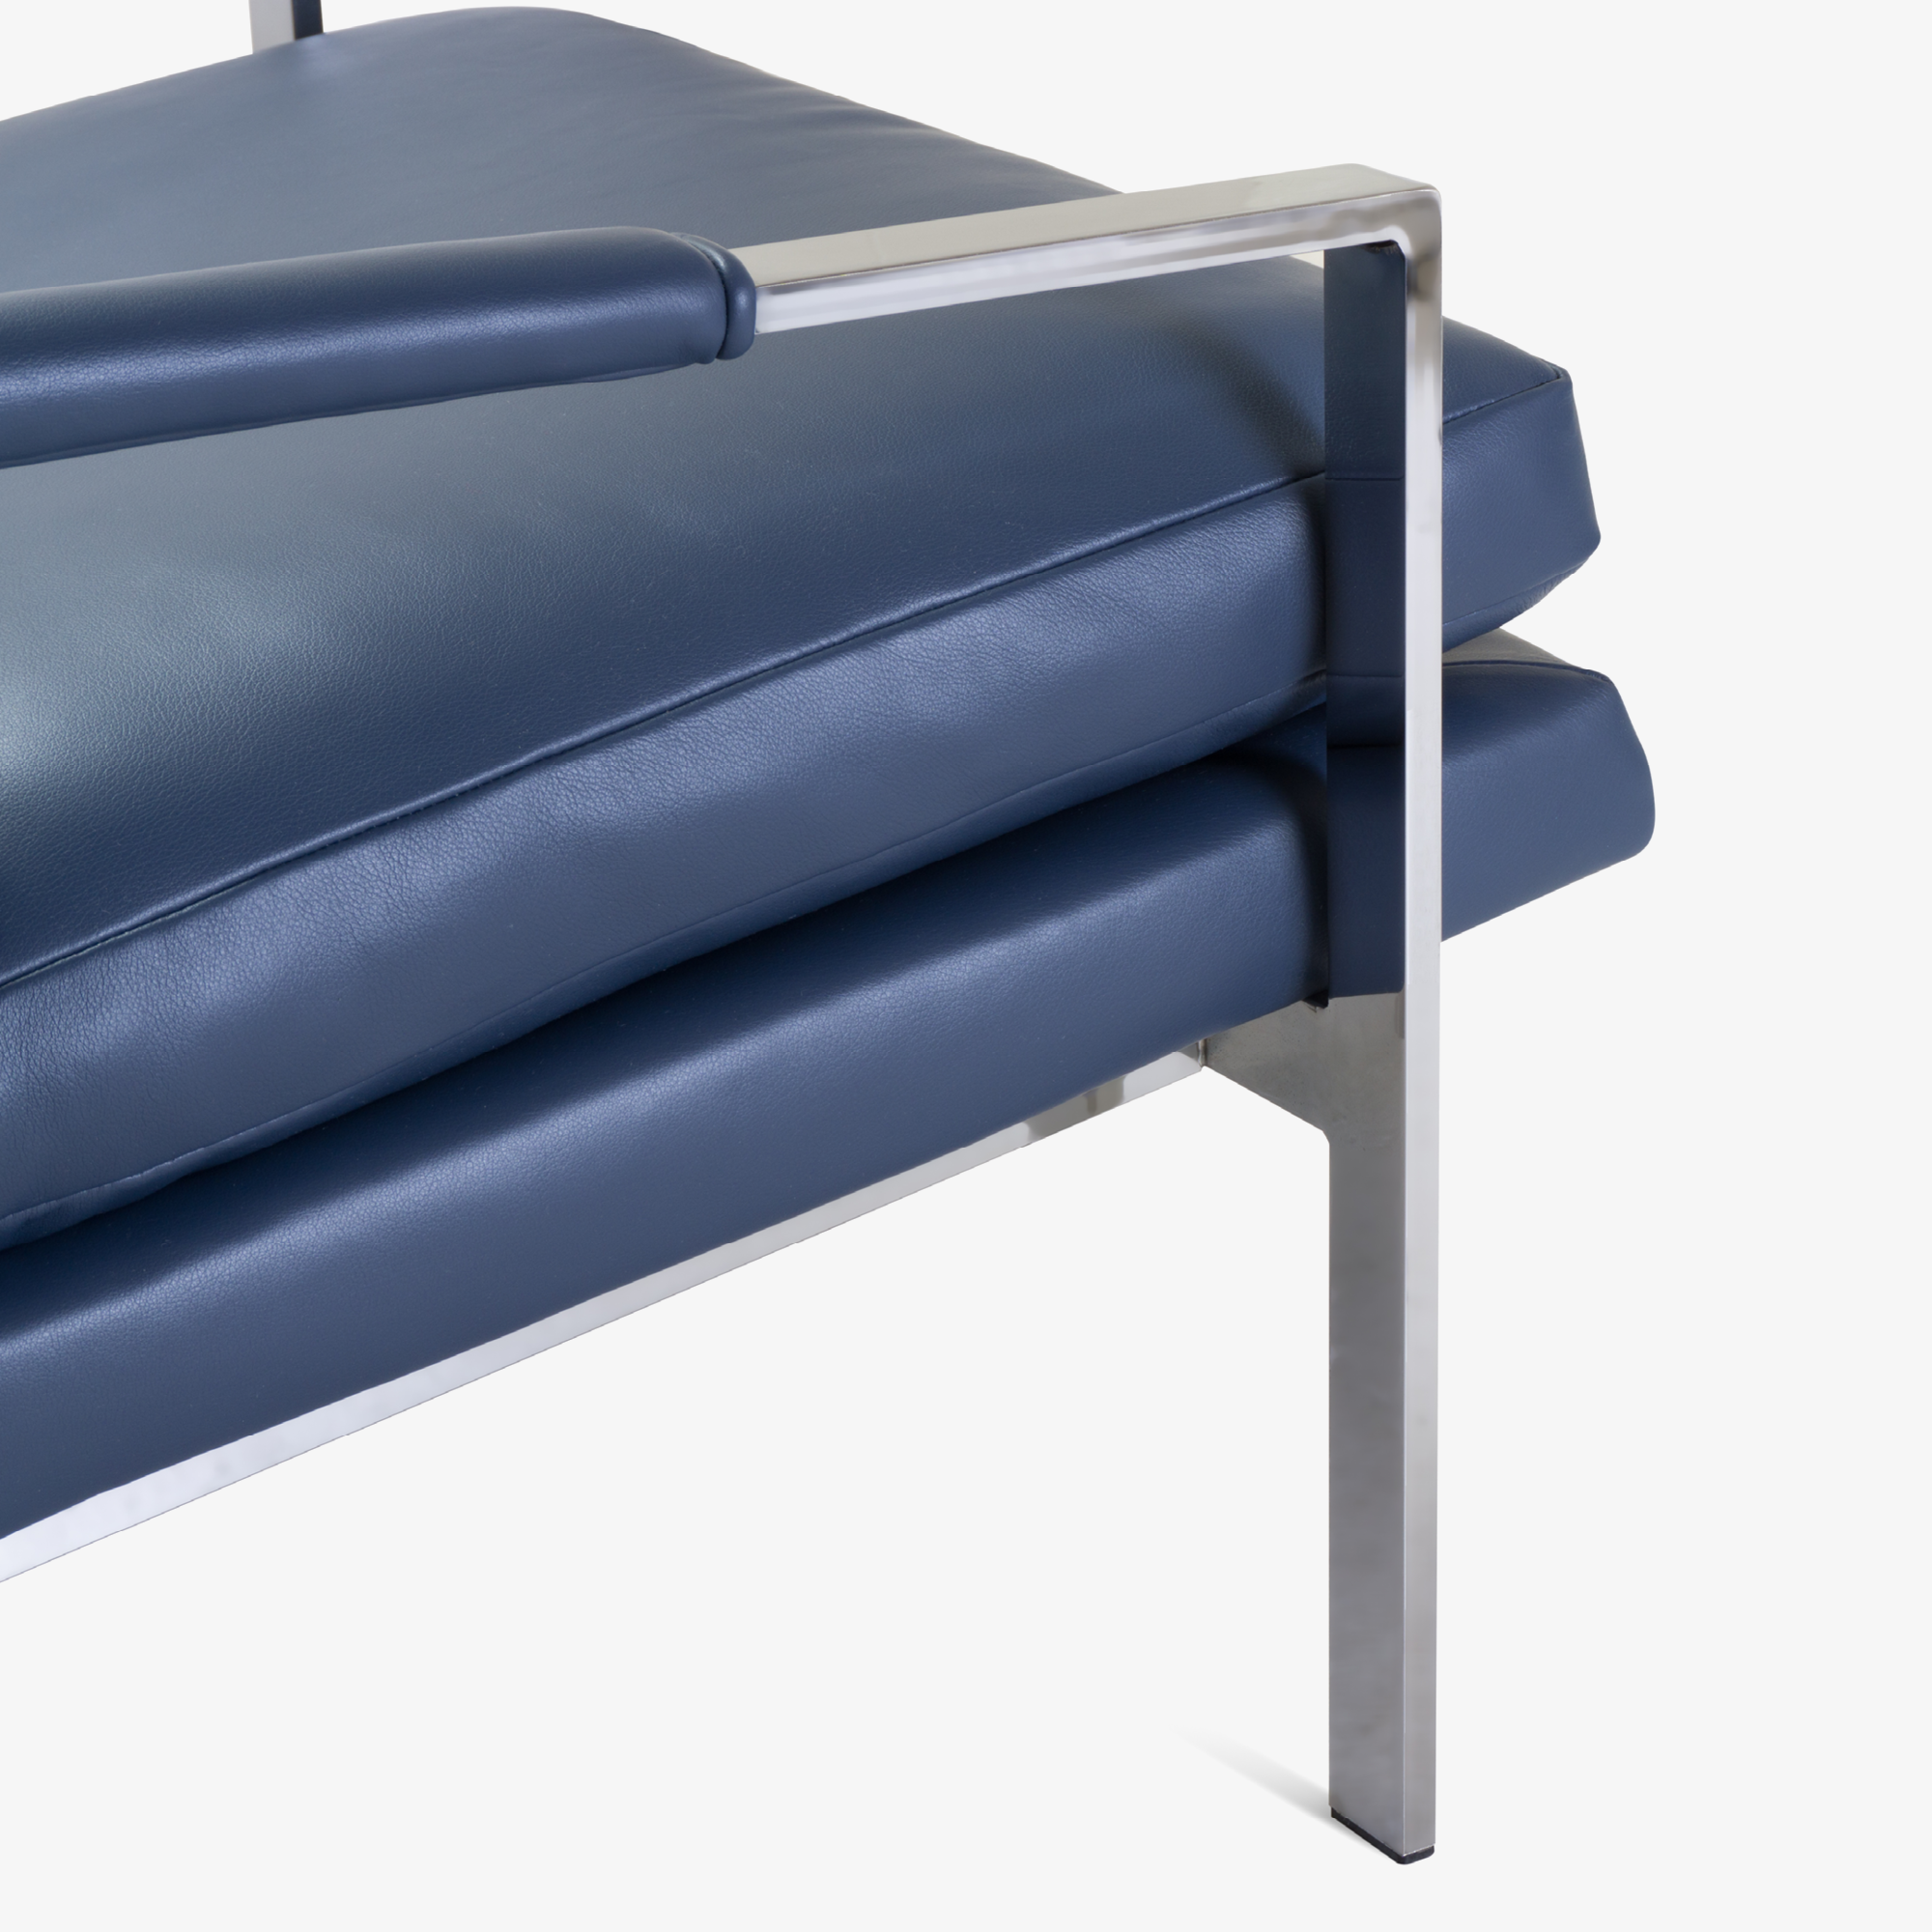 Flat-Bar Club Chairs in Navy Leather by Milo Baughman for Thayer Coggin6.png